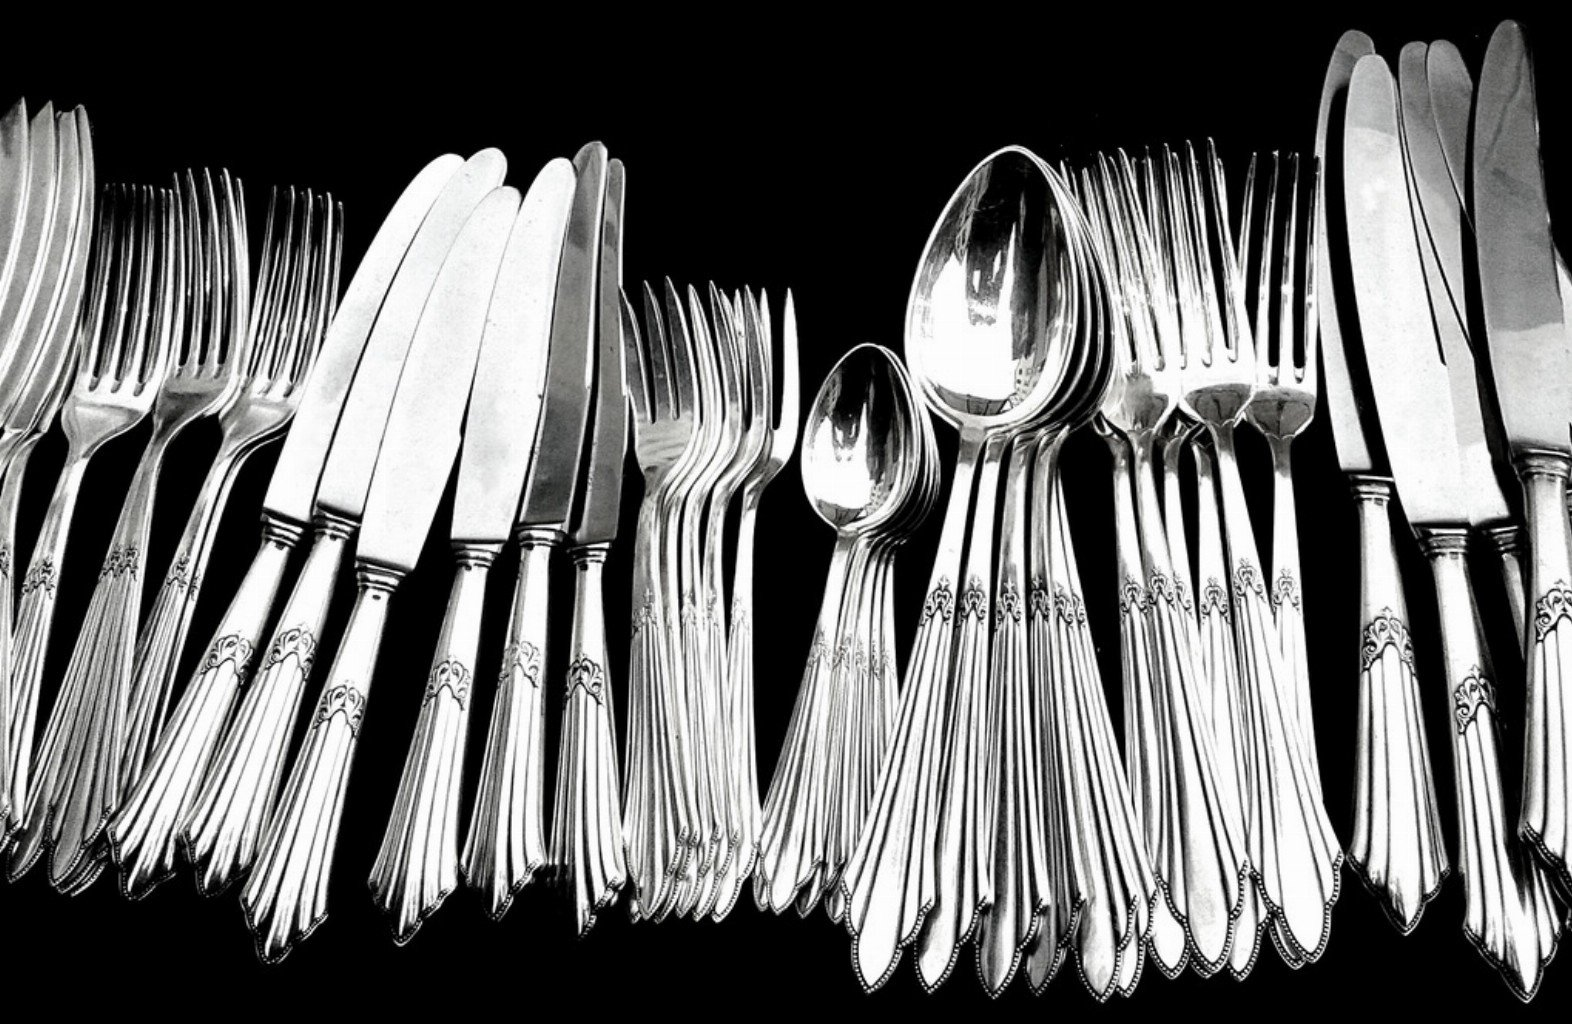 silver-cutlery-polishing